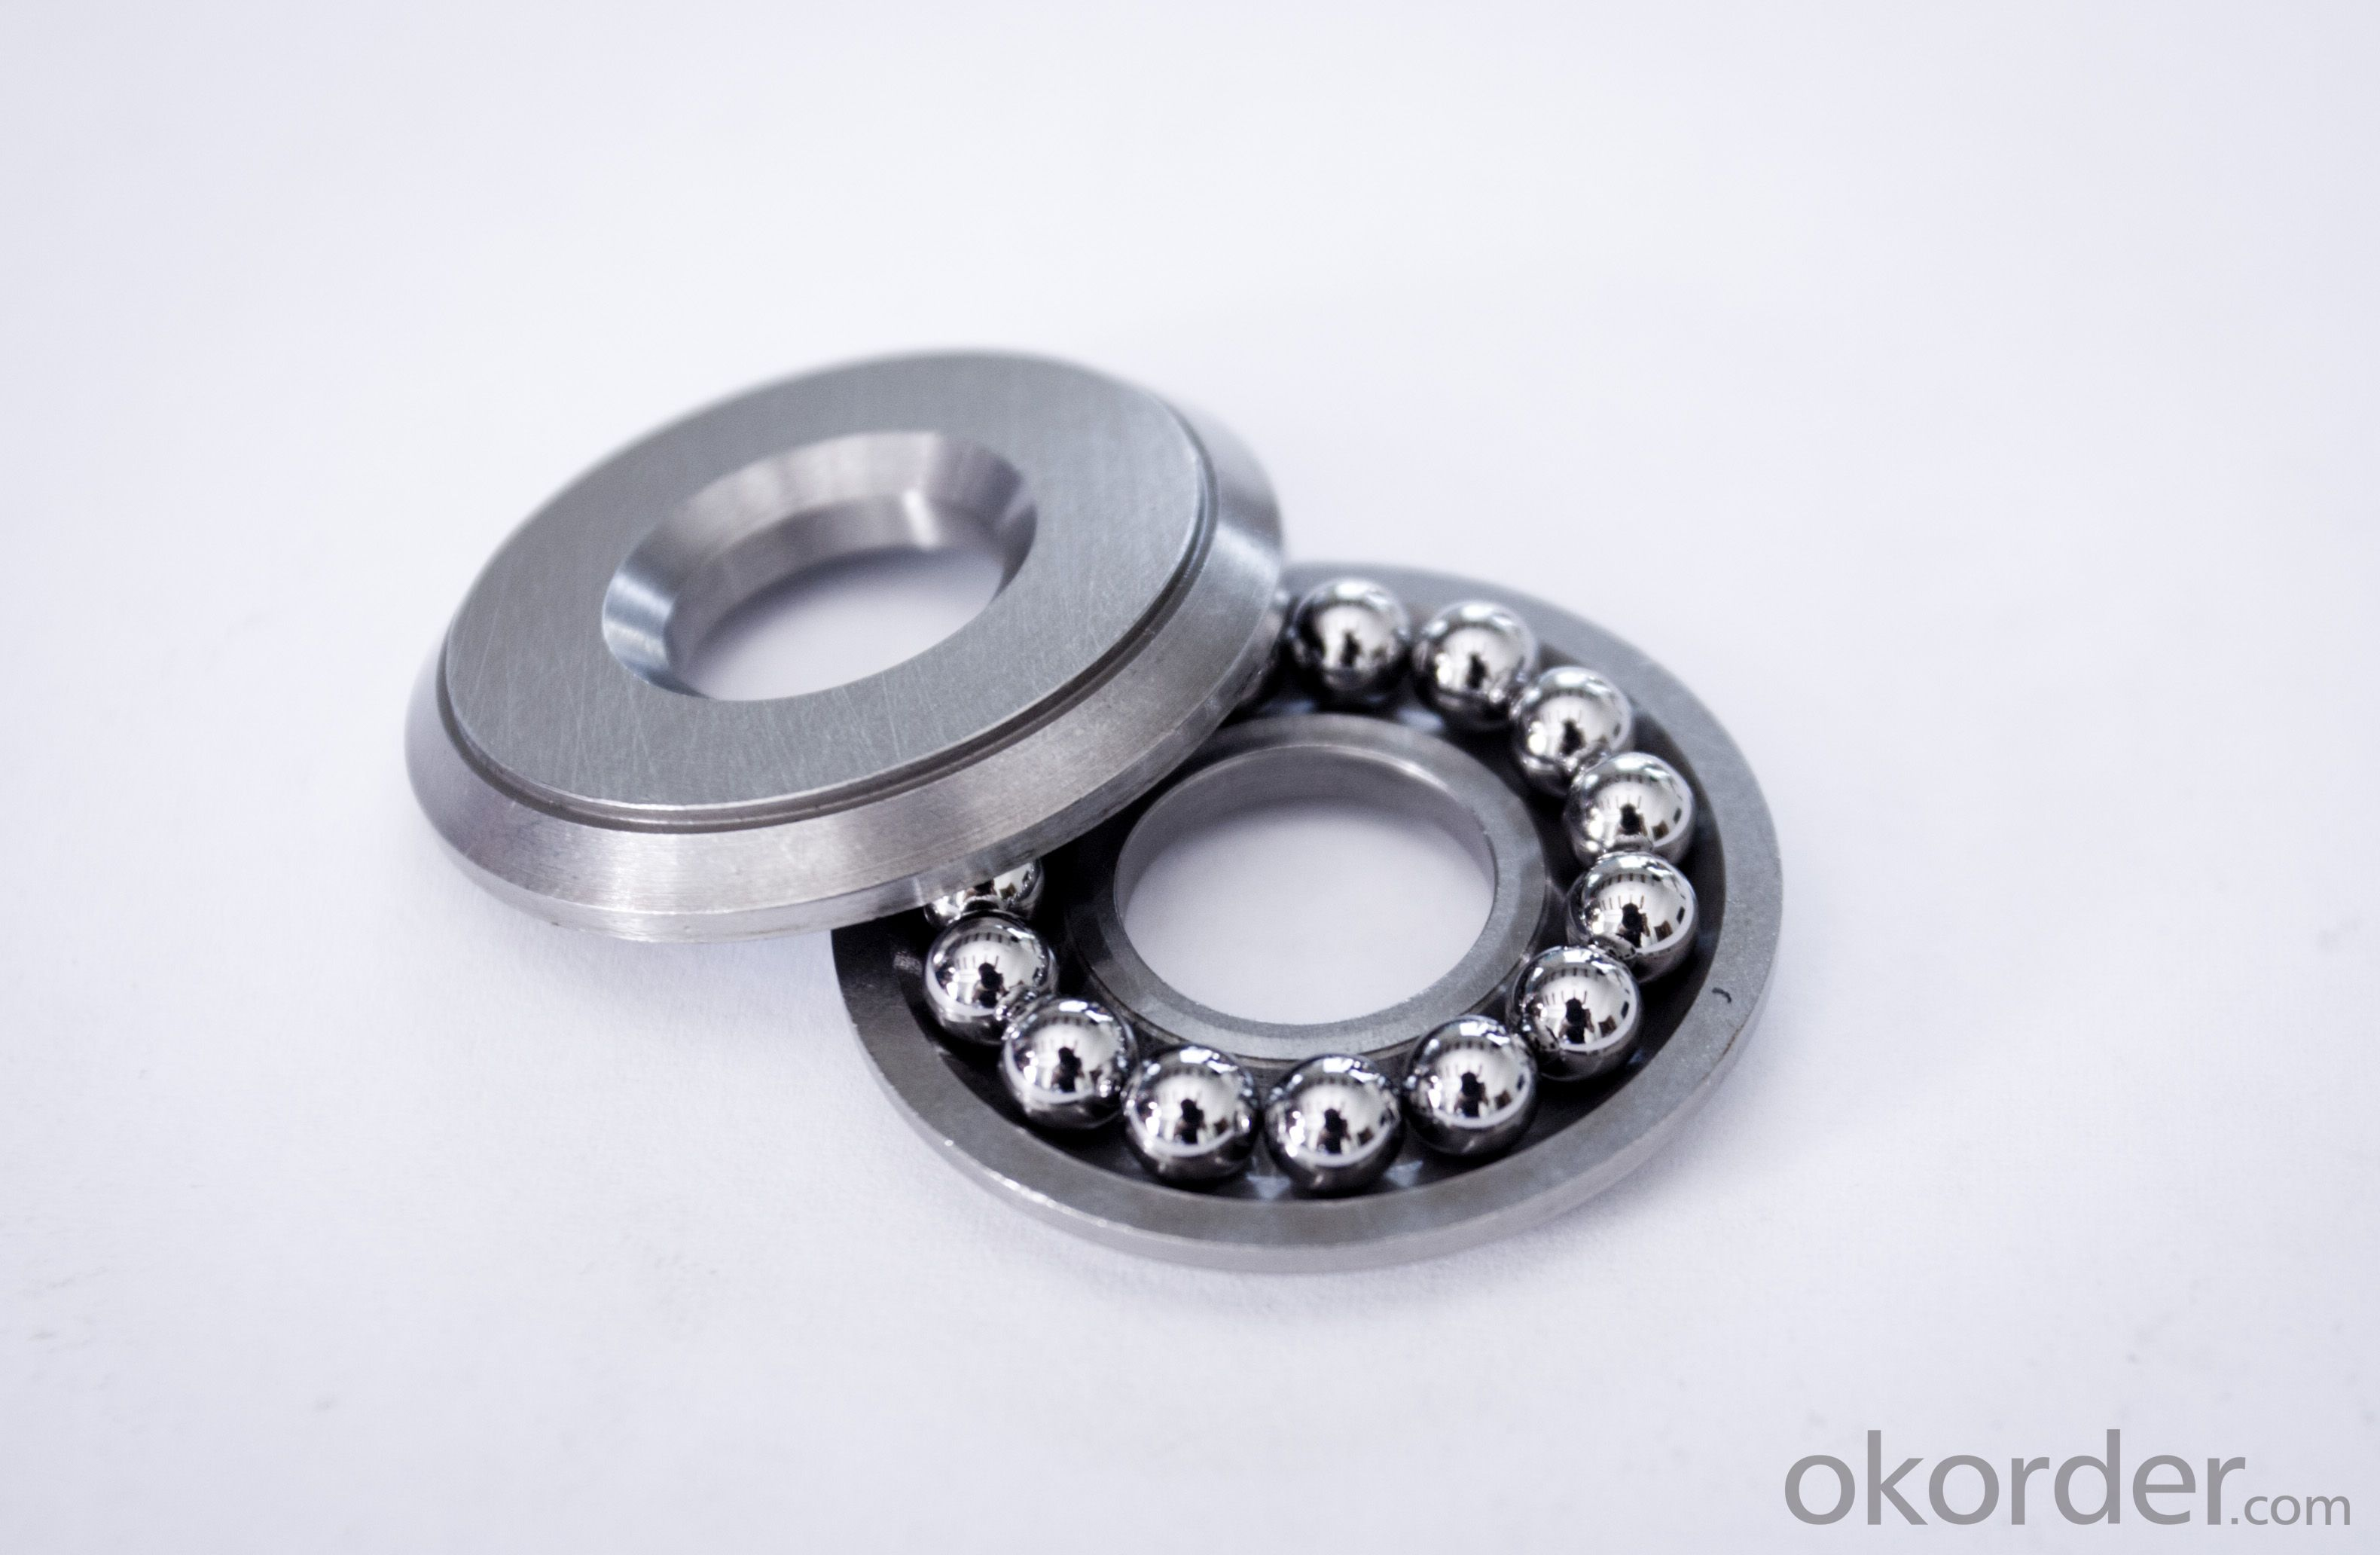 Plane thrust ball bearings for crane hook